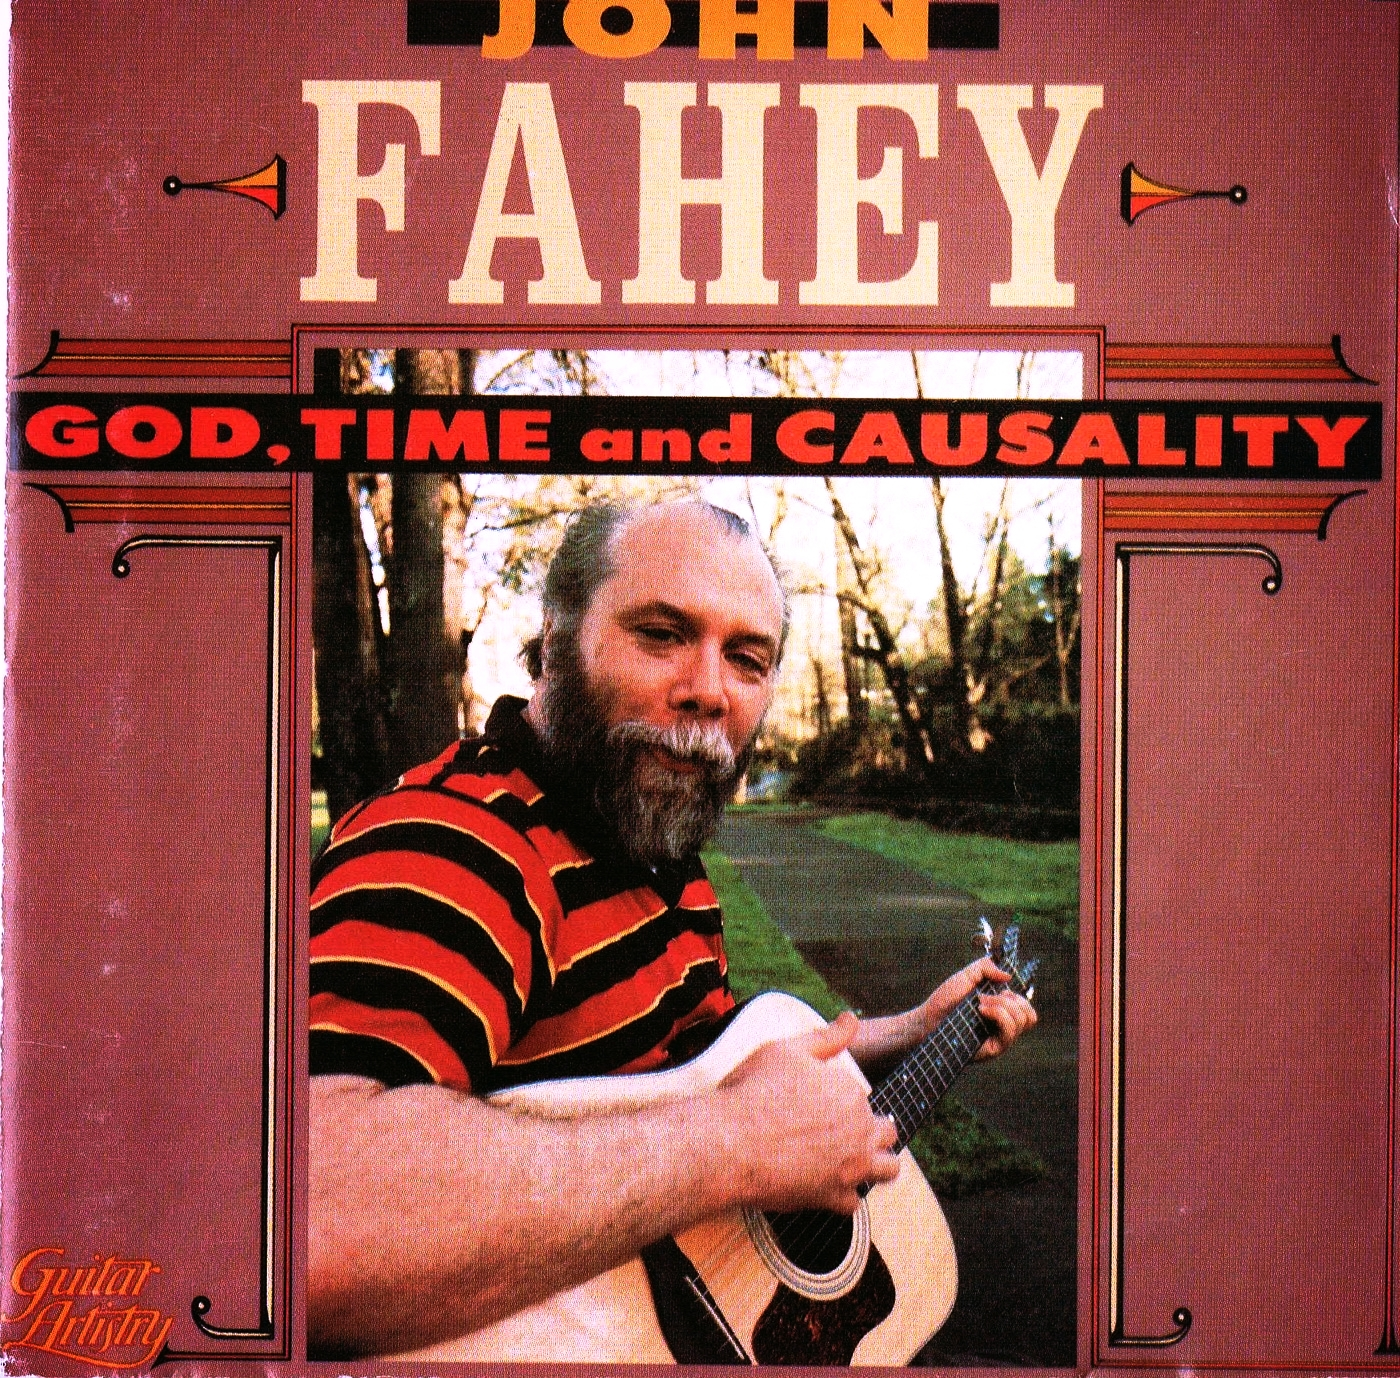 John Fahey, God, Time & Causality